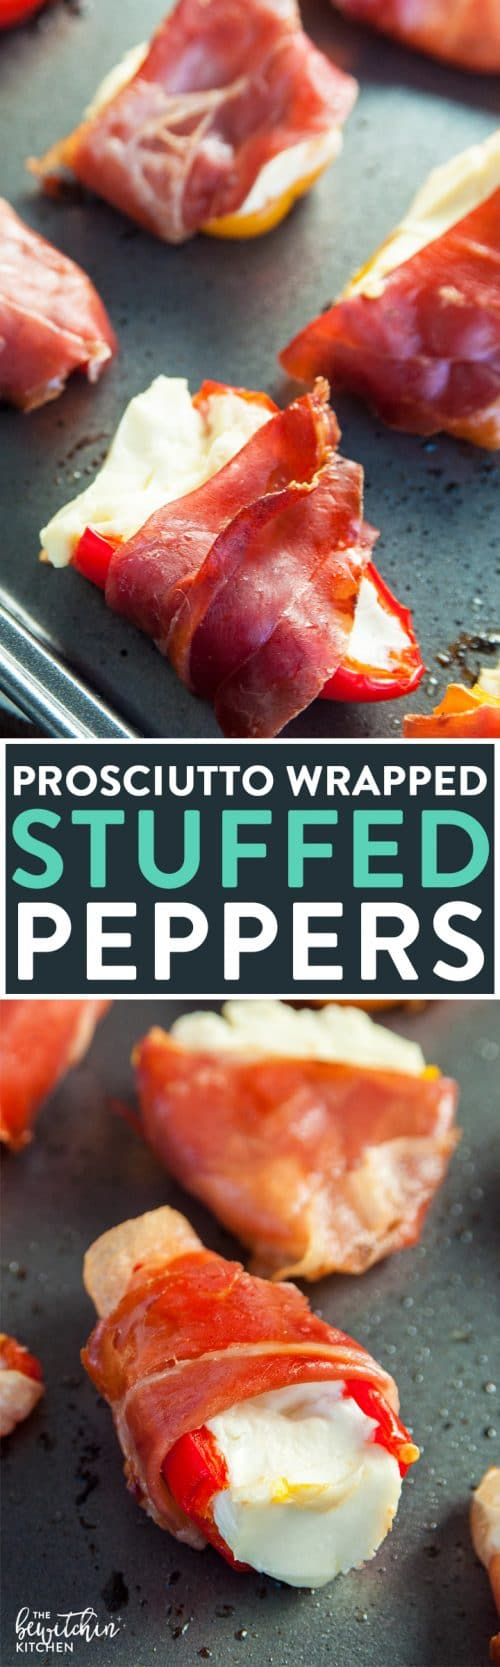 Prosciutto Wrapped Stuffed Peppers Recipe - these easy stuffed peppers are loaded with cream cheese and wrapped with salt prosciutto (fancy bacon). Perfect appetizer for parties and the holidays (like Christmas, Thanksgiving and New Years).